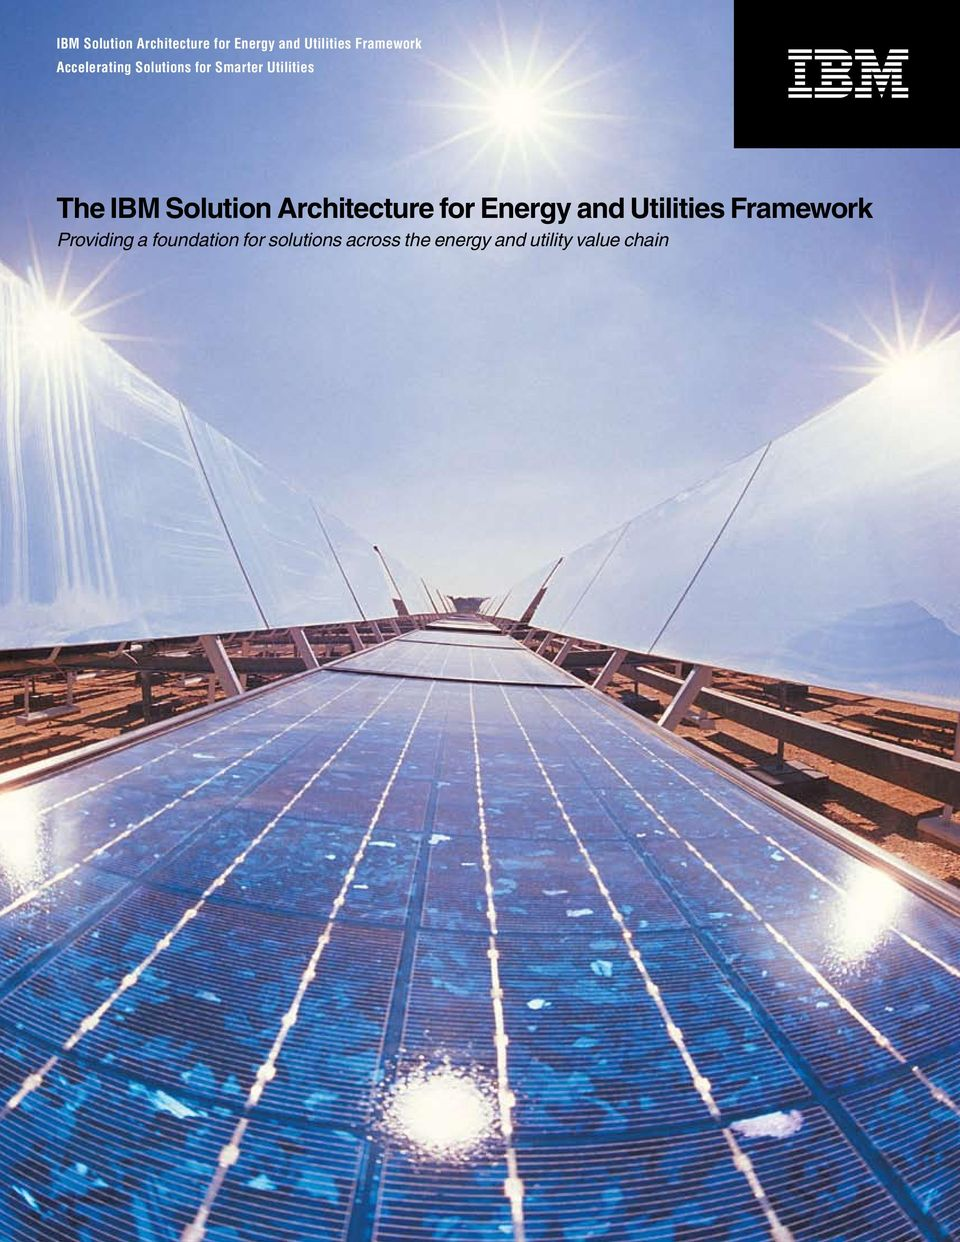 foundation for solutions across the energy and utility value